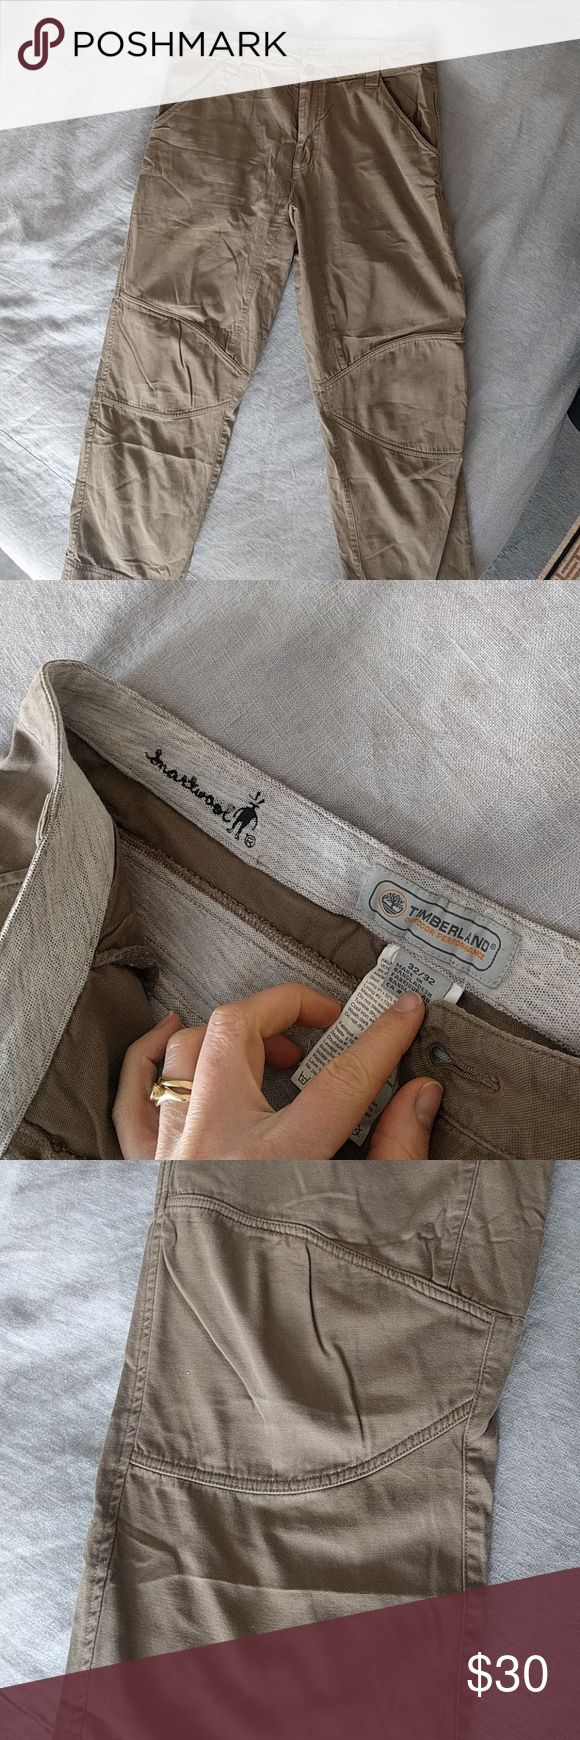 32 x 32 gray Timberland trousers with Smartwool Excellent used condition gray trousers with Smartwool, these Timberland 32 x 32s are a great choice for chillier seasons. Made from canvas-like material and having details at the knee and seat pockets also helps make them a little something out of the ordinary. Not you average khakis. Timberland Pants Chinos & Khakis